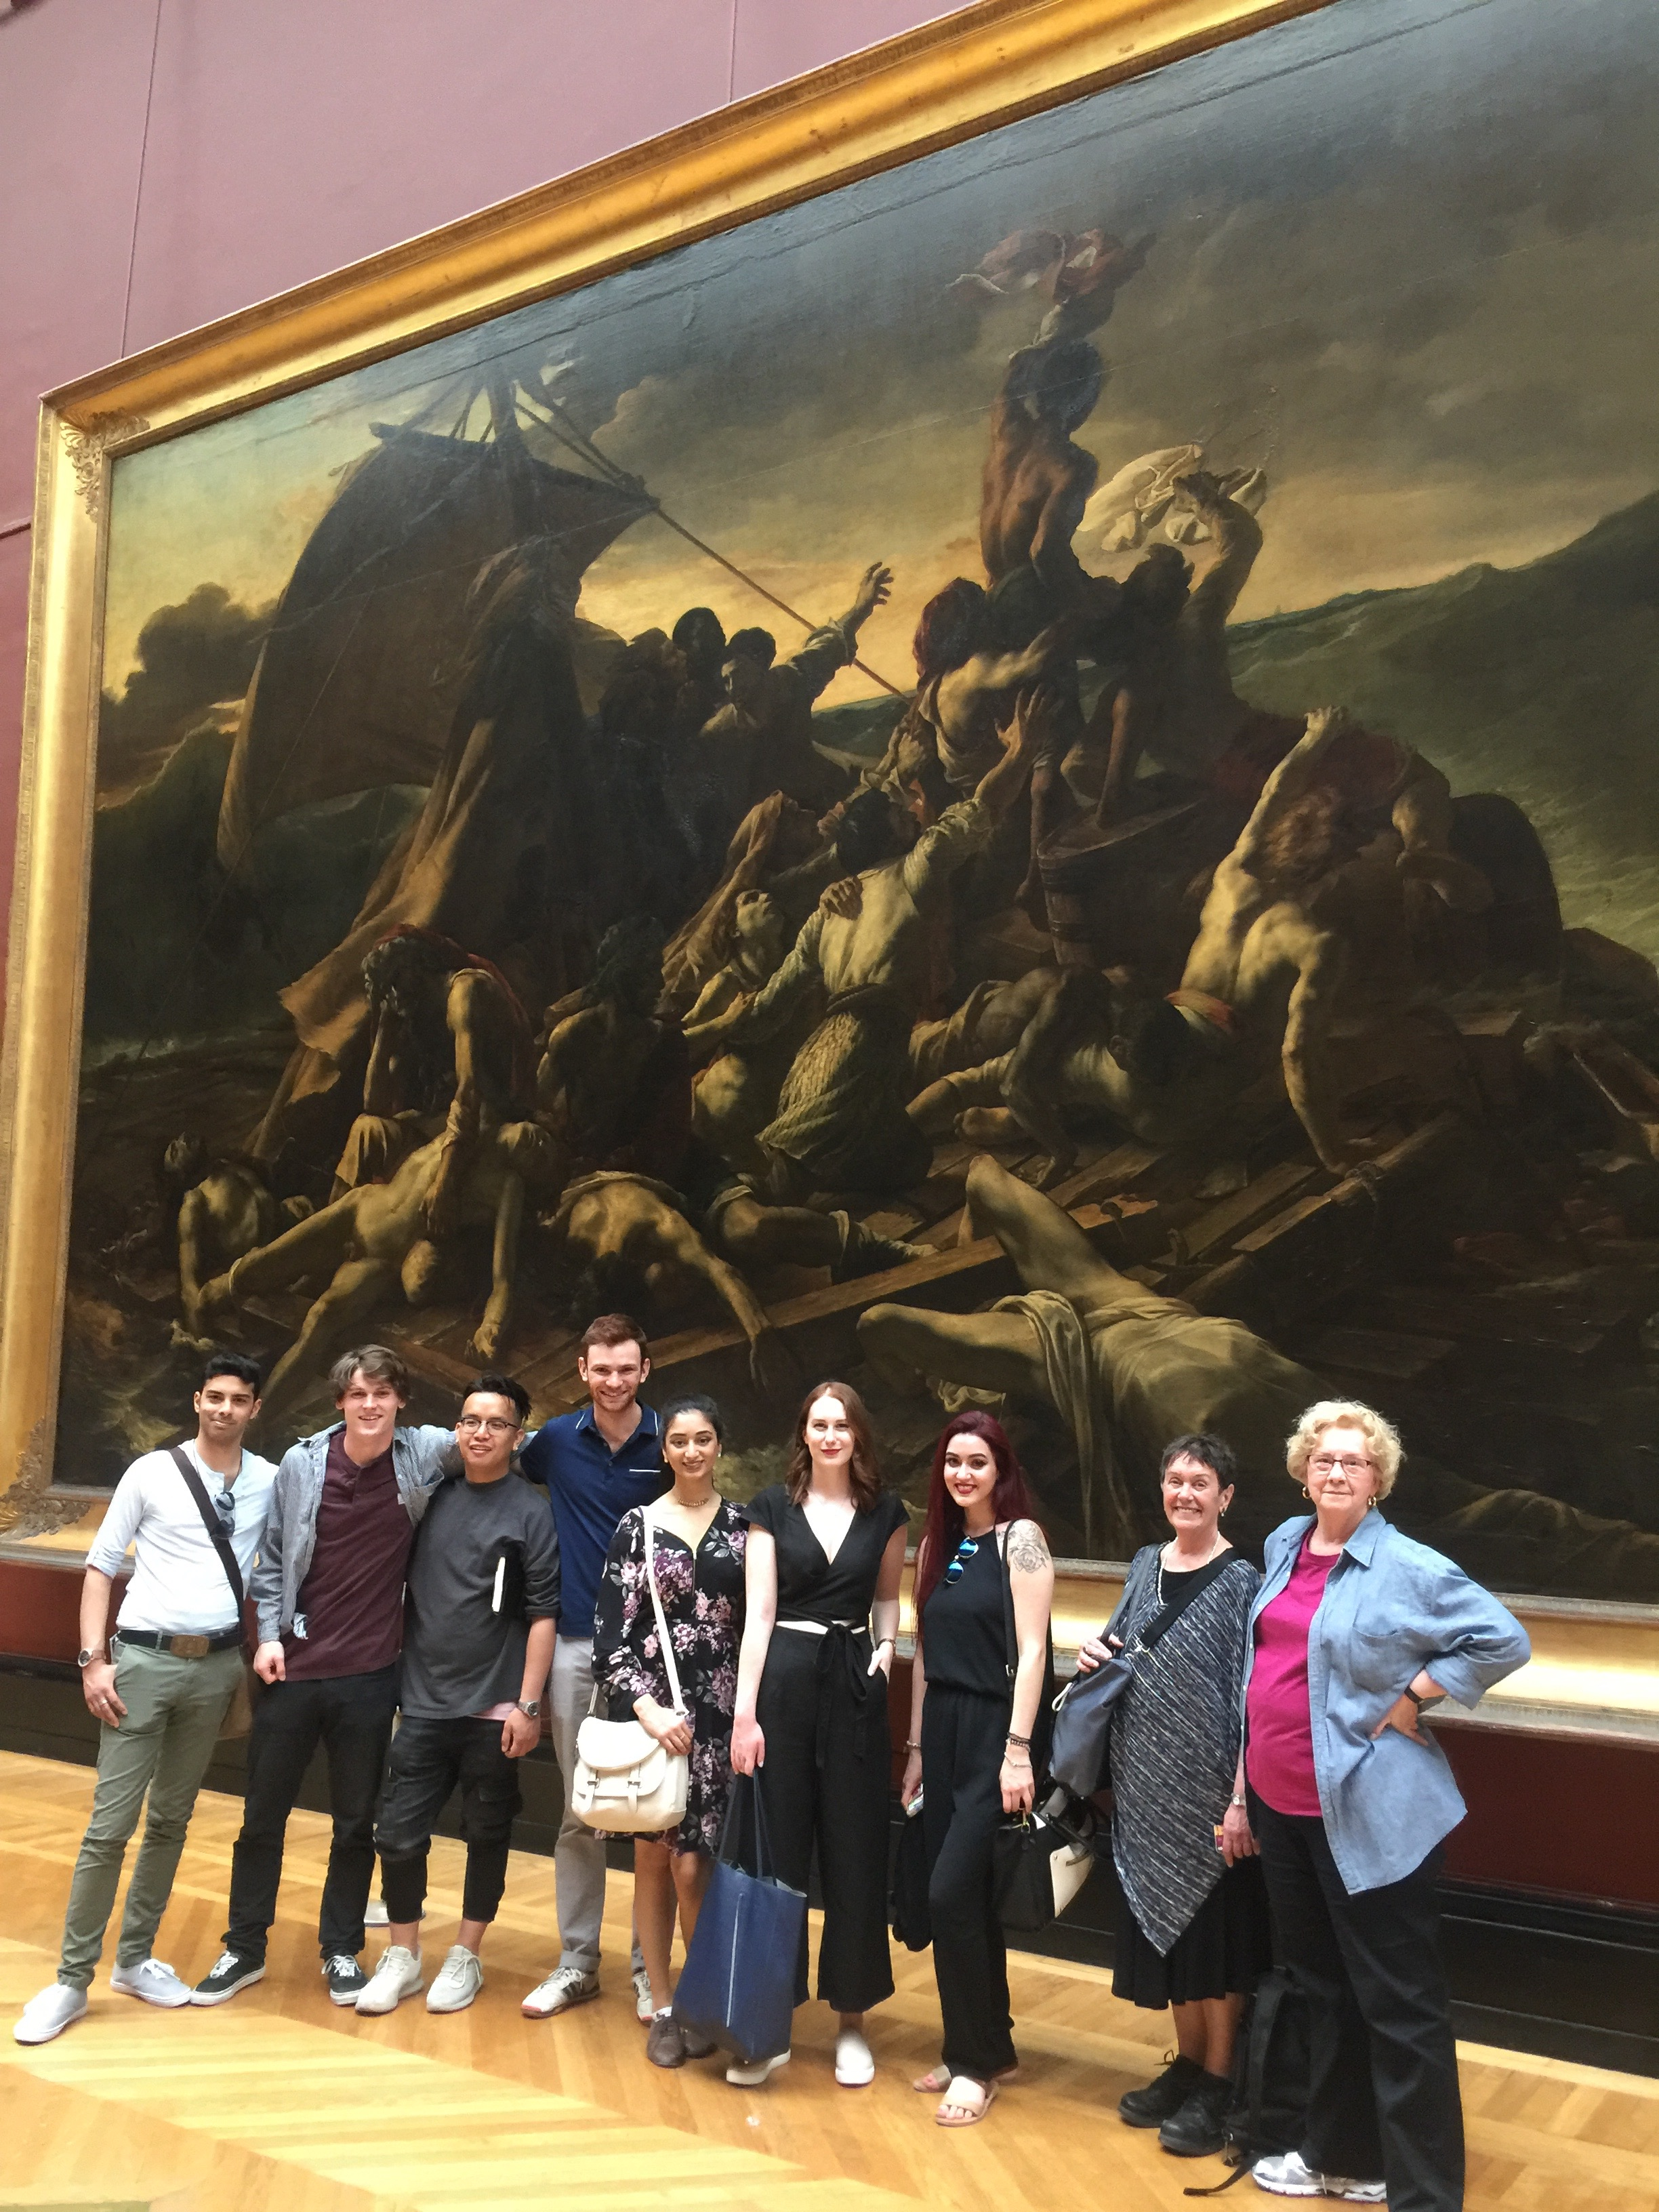 Back in Paris at the Louvre Museum, Stephane (at far left) poses with field school students in front of Gericault's  Raft of the Medusa  (1818-19).